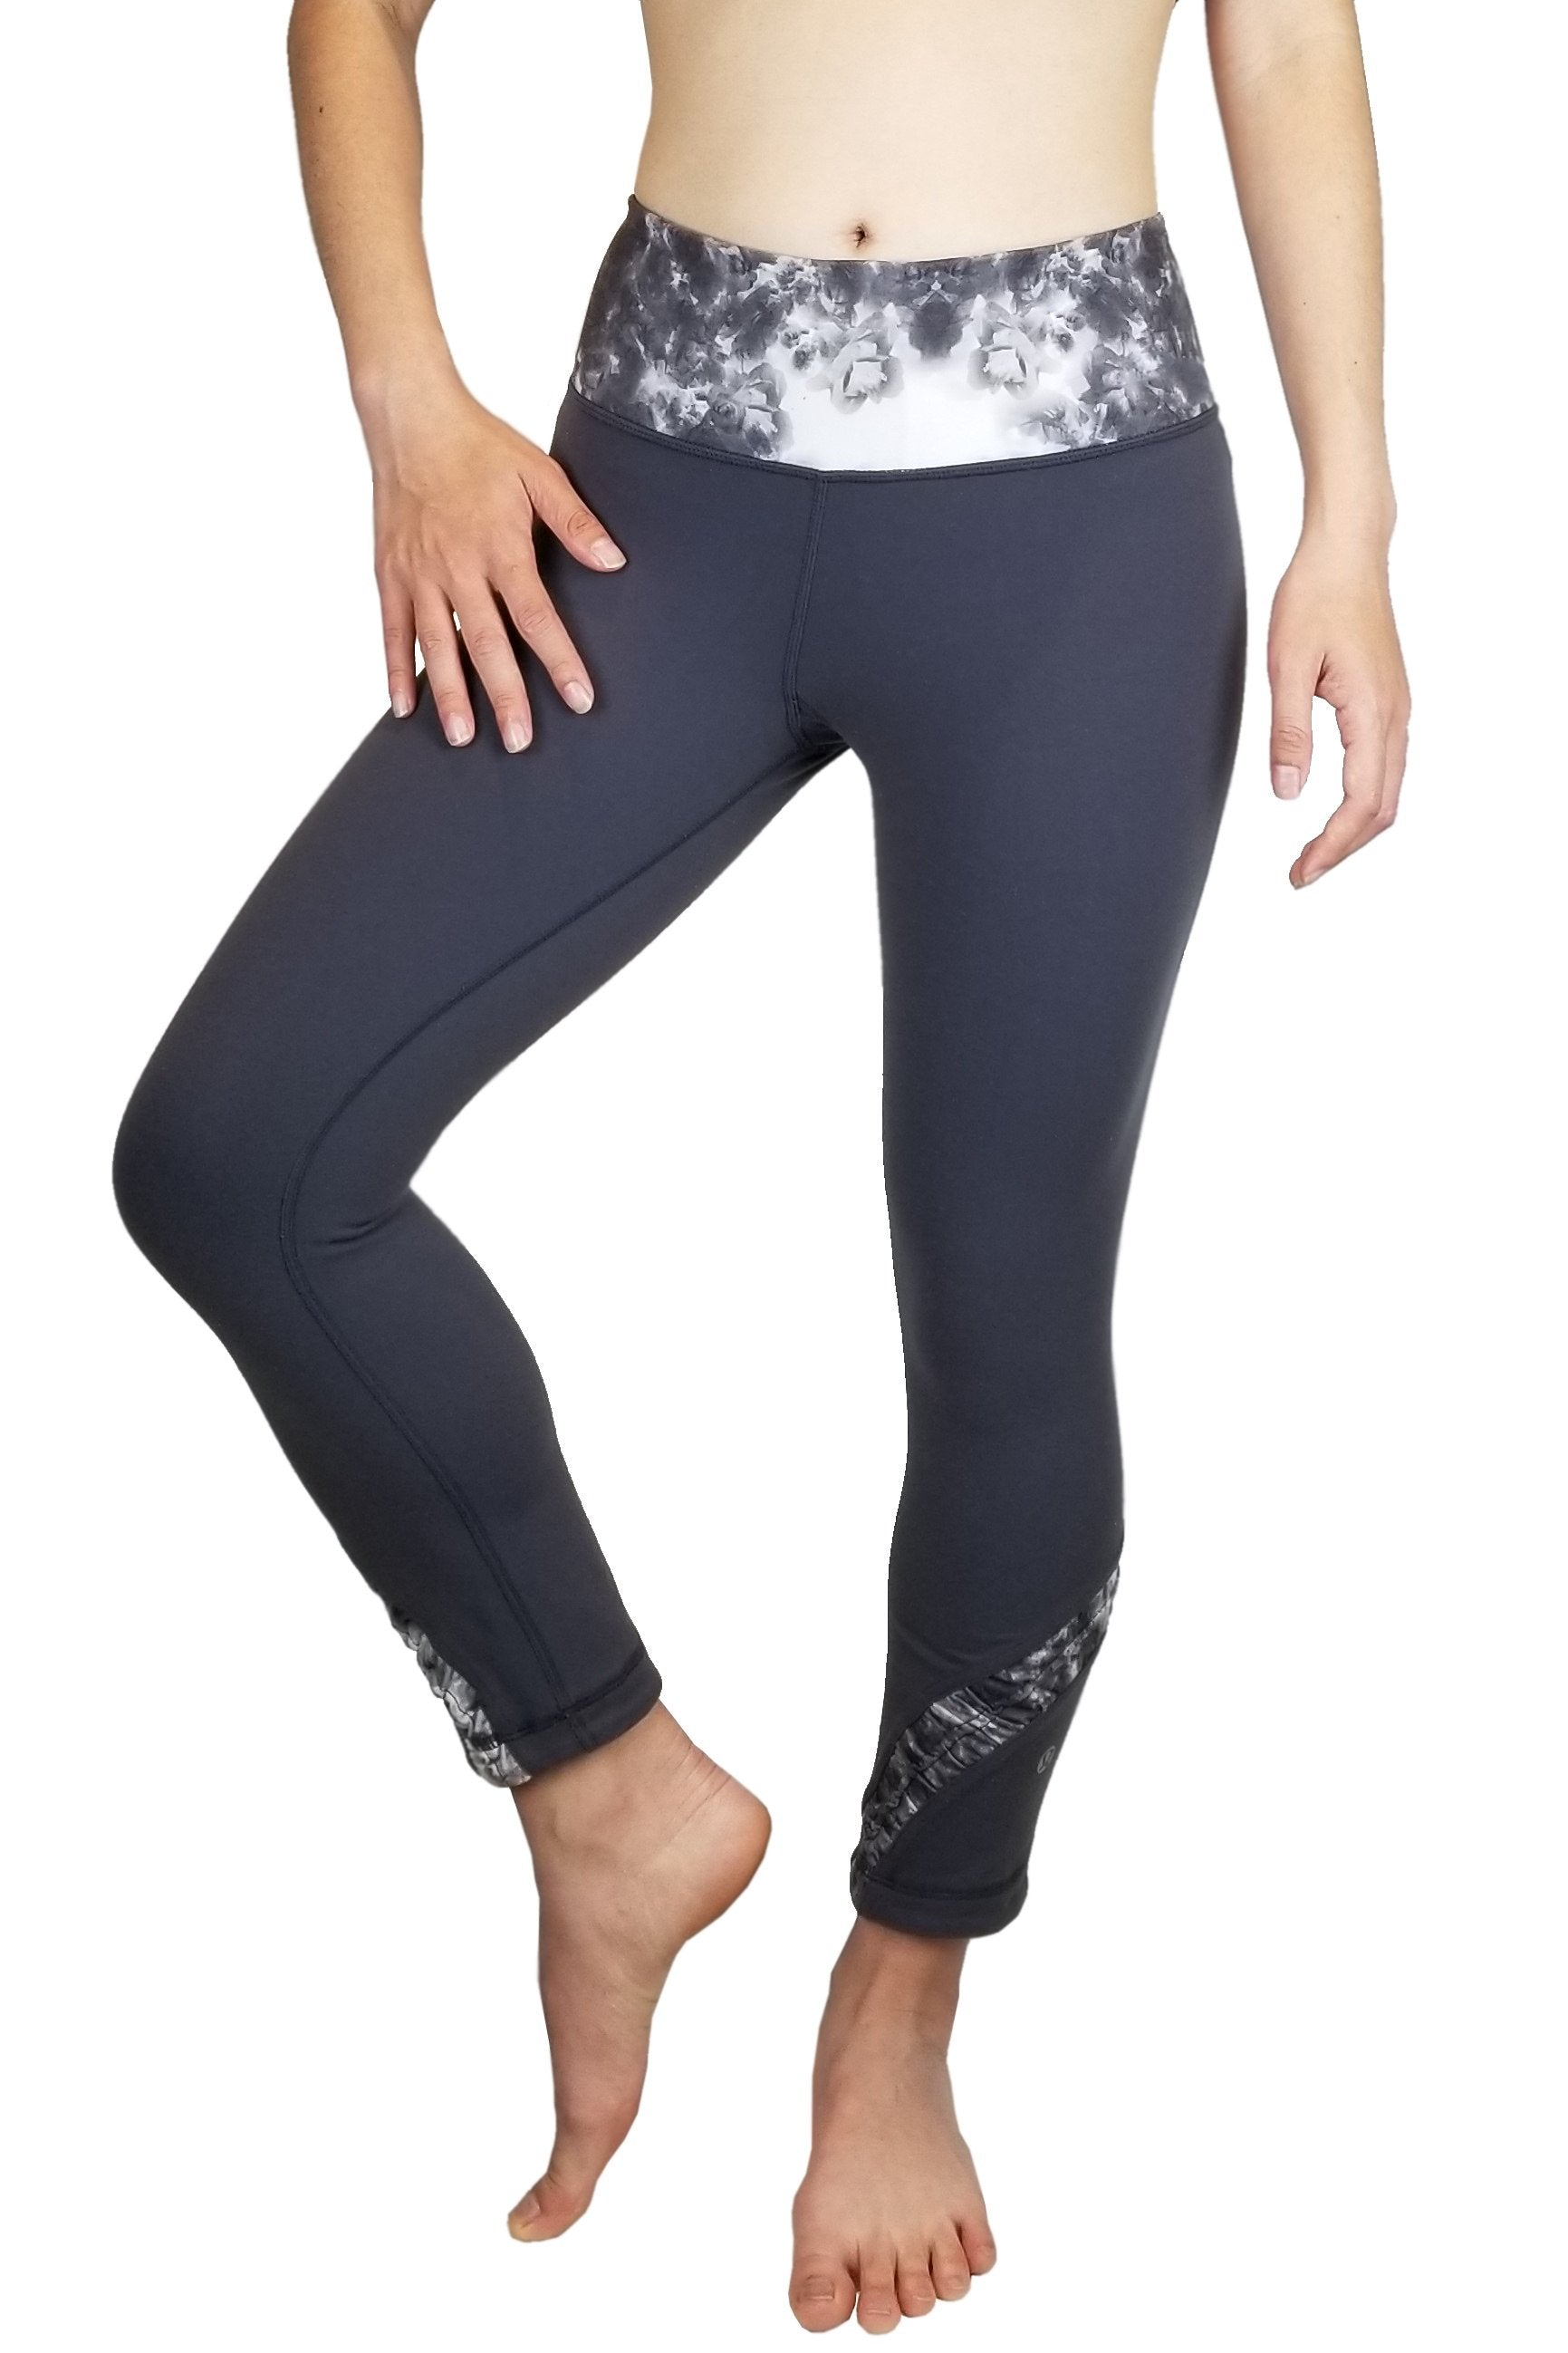 Lululemon Tight Yoga Pants, Vancouver street wear/Yoga pants. Lululemon size 4. https://info.lululemon.com/help/size-chart, Grey, Nylon, Lycra, and Spandex, women's Activewear, women's Grey Activewear, Lululemon women's Activewear, Yoga, yoga pants, women's athletic wear, women's work out clothes, women's comfortable pants, fitness, fit